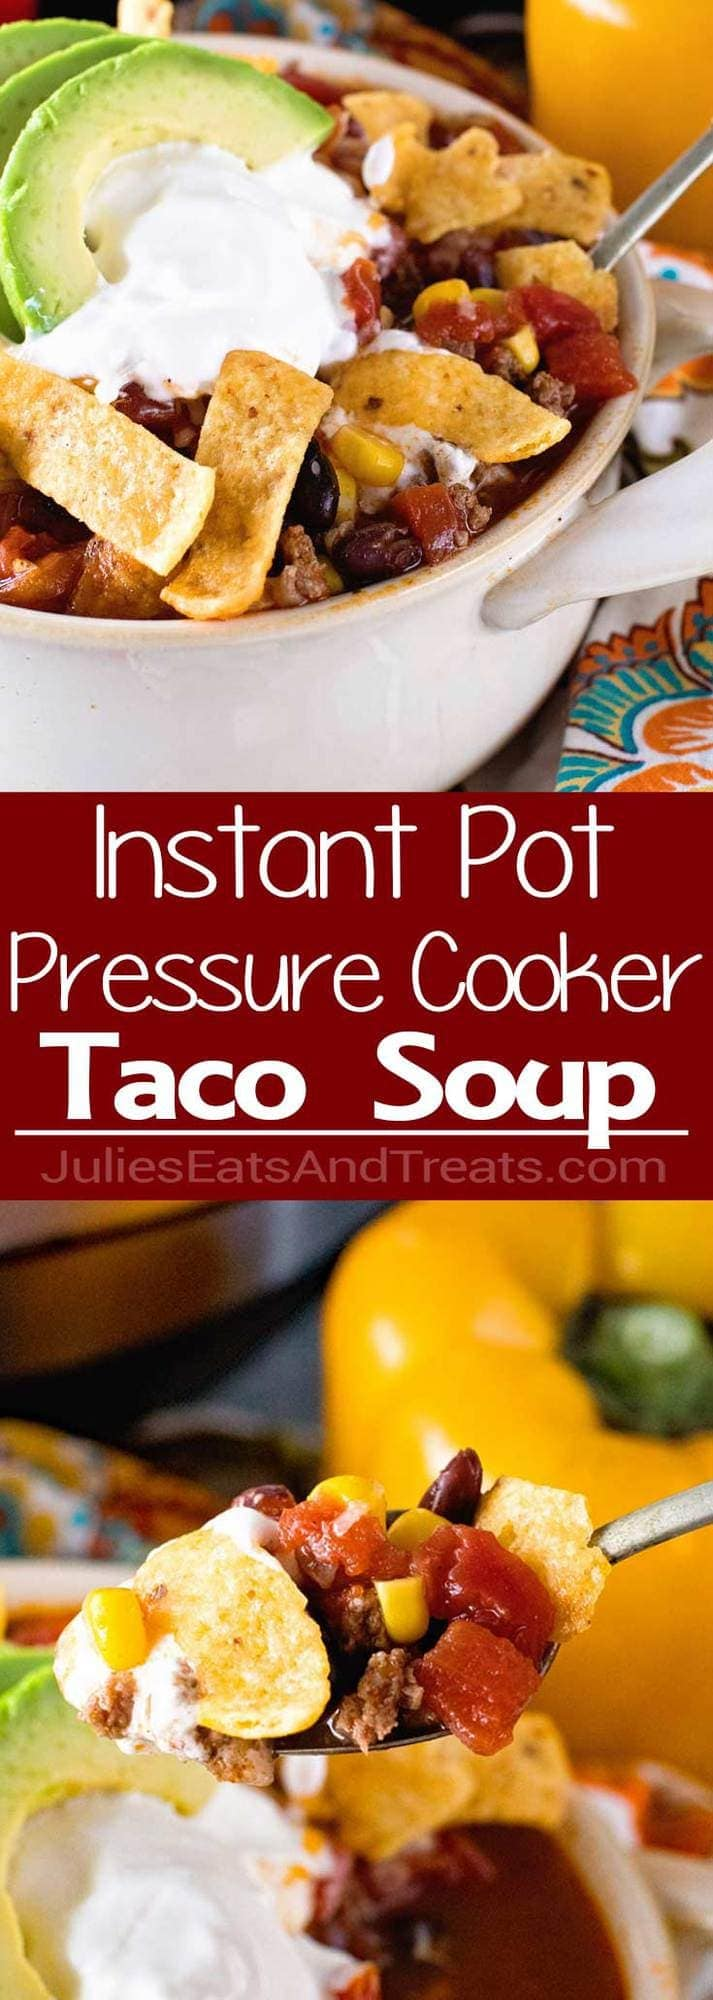 {Instant Pot} Pressure Cooker Beef Taco Soup ~ Quick, Easy Homemade Taco Soup with Hamburger! Warm Up with a Big Bowl of this Taco Soup Made in Your Pressure Cooker!